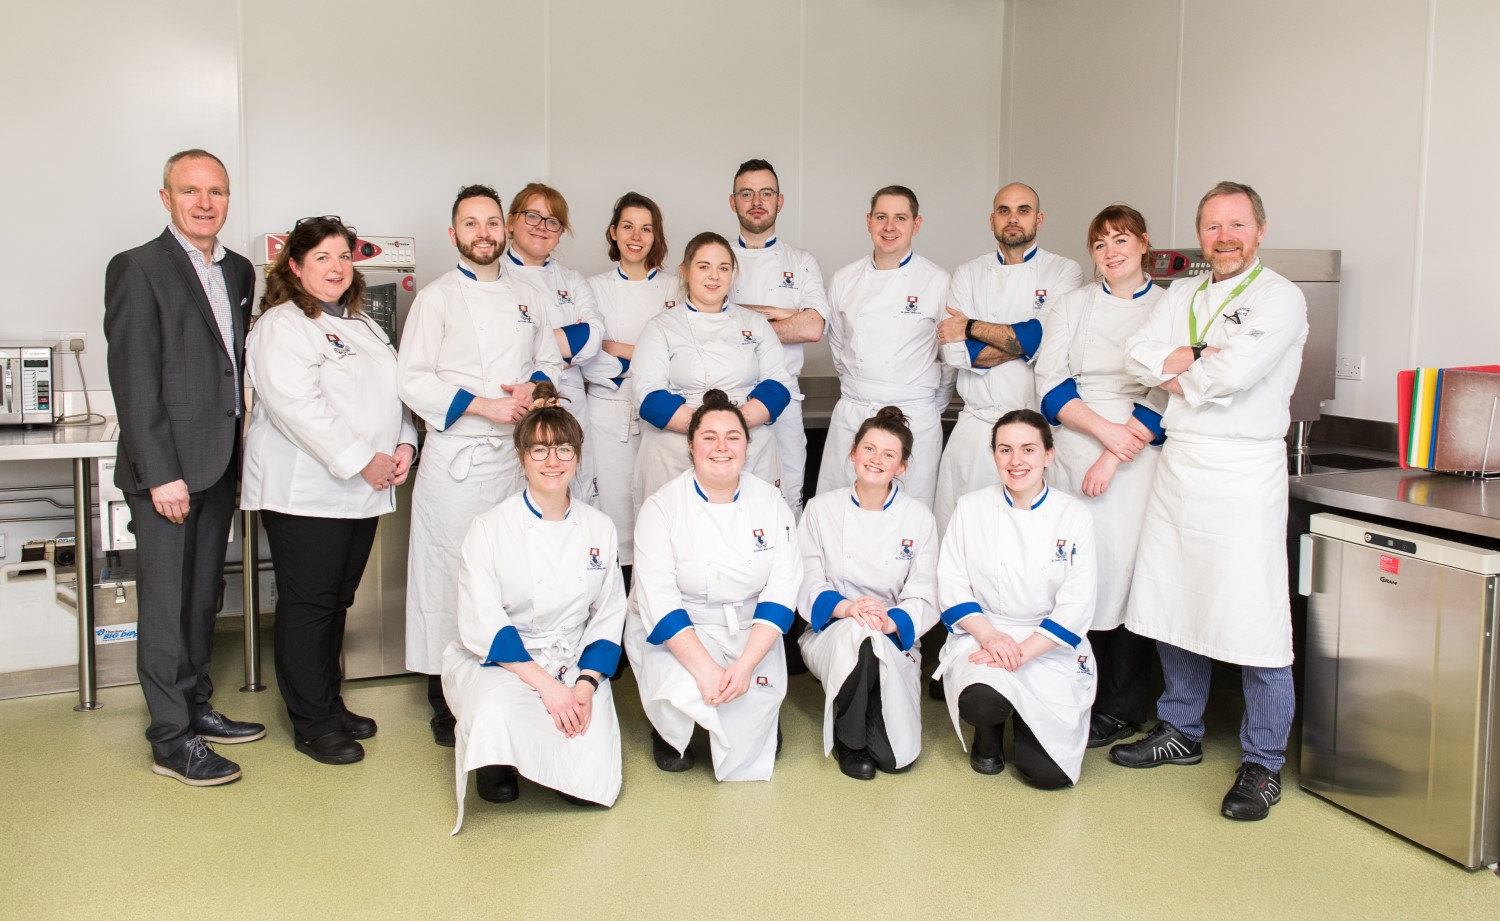 Through teaming with WIT and Bellissimo, Pallas Foods and ABP are supporting the student chefs to put their skills into action.